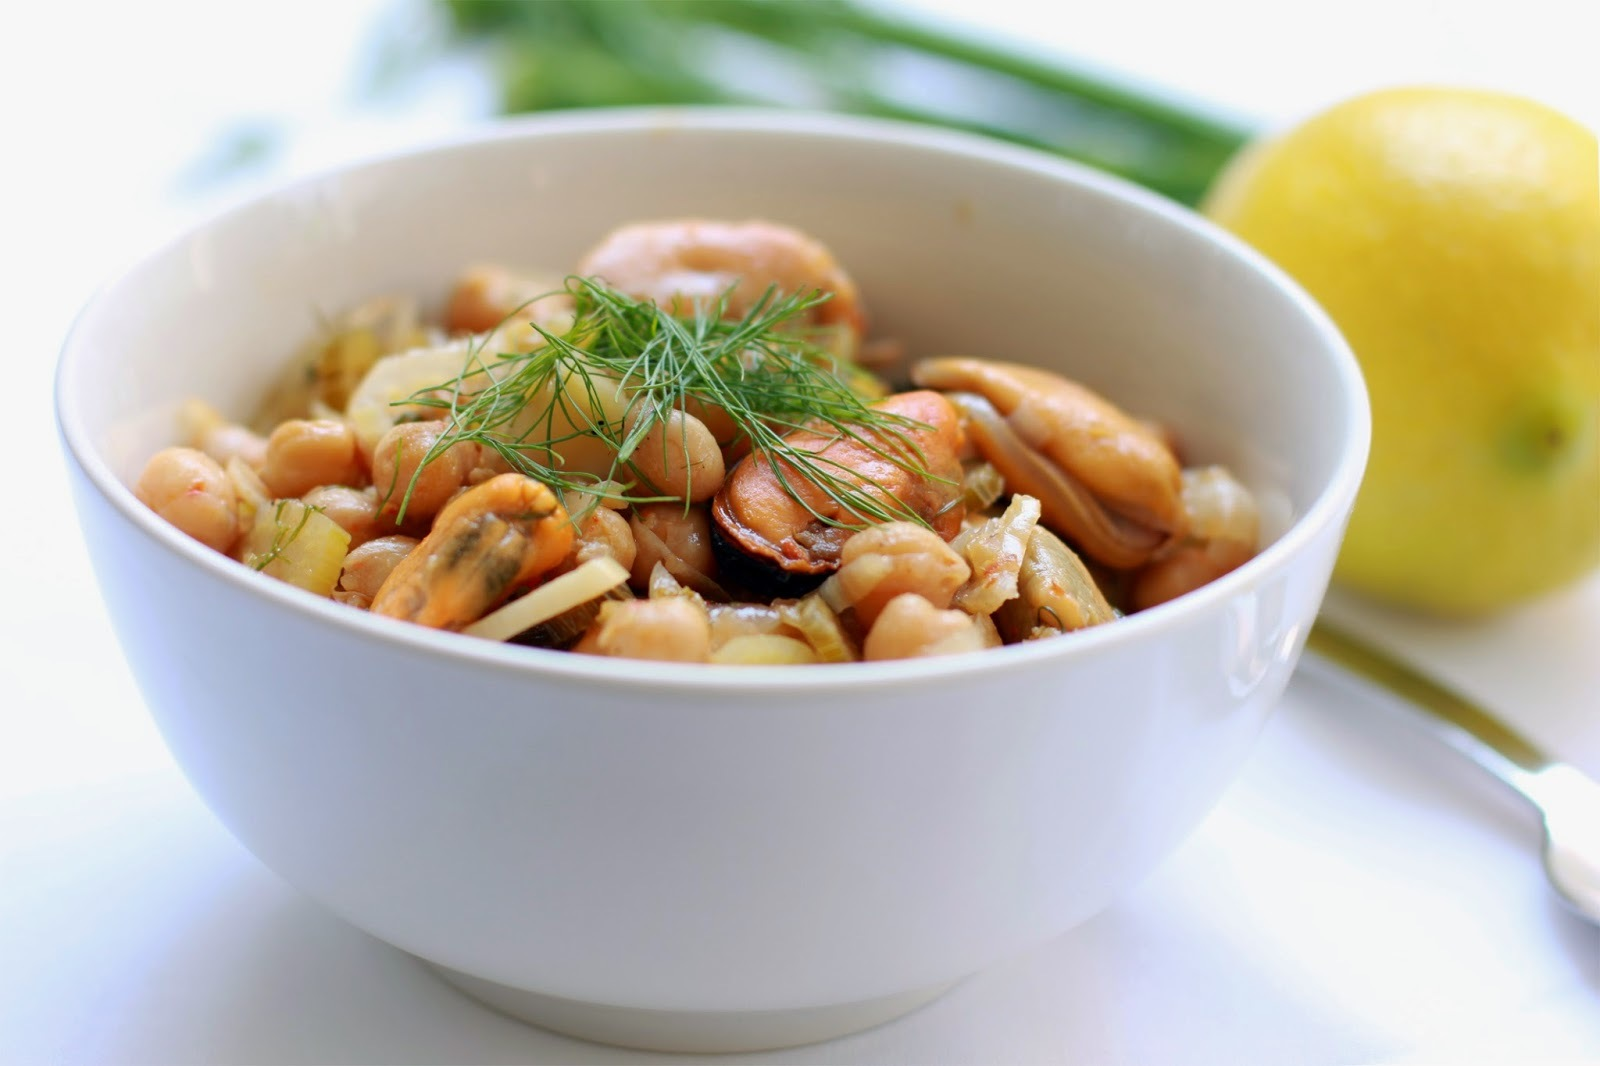 Mussels, Fennel & Chickpea Stew